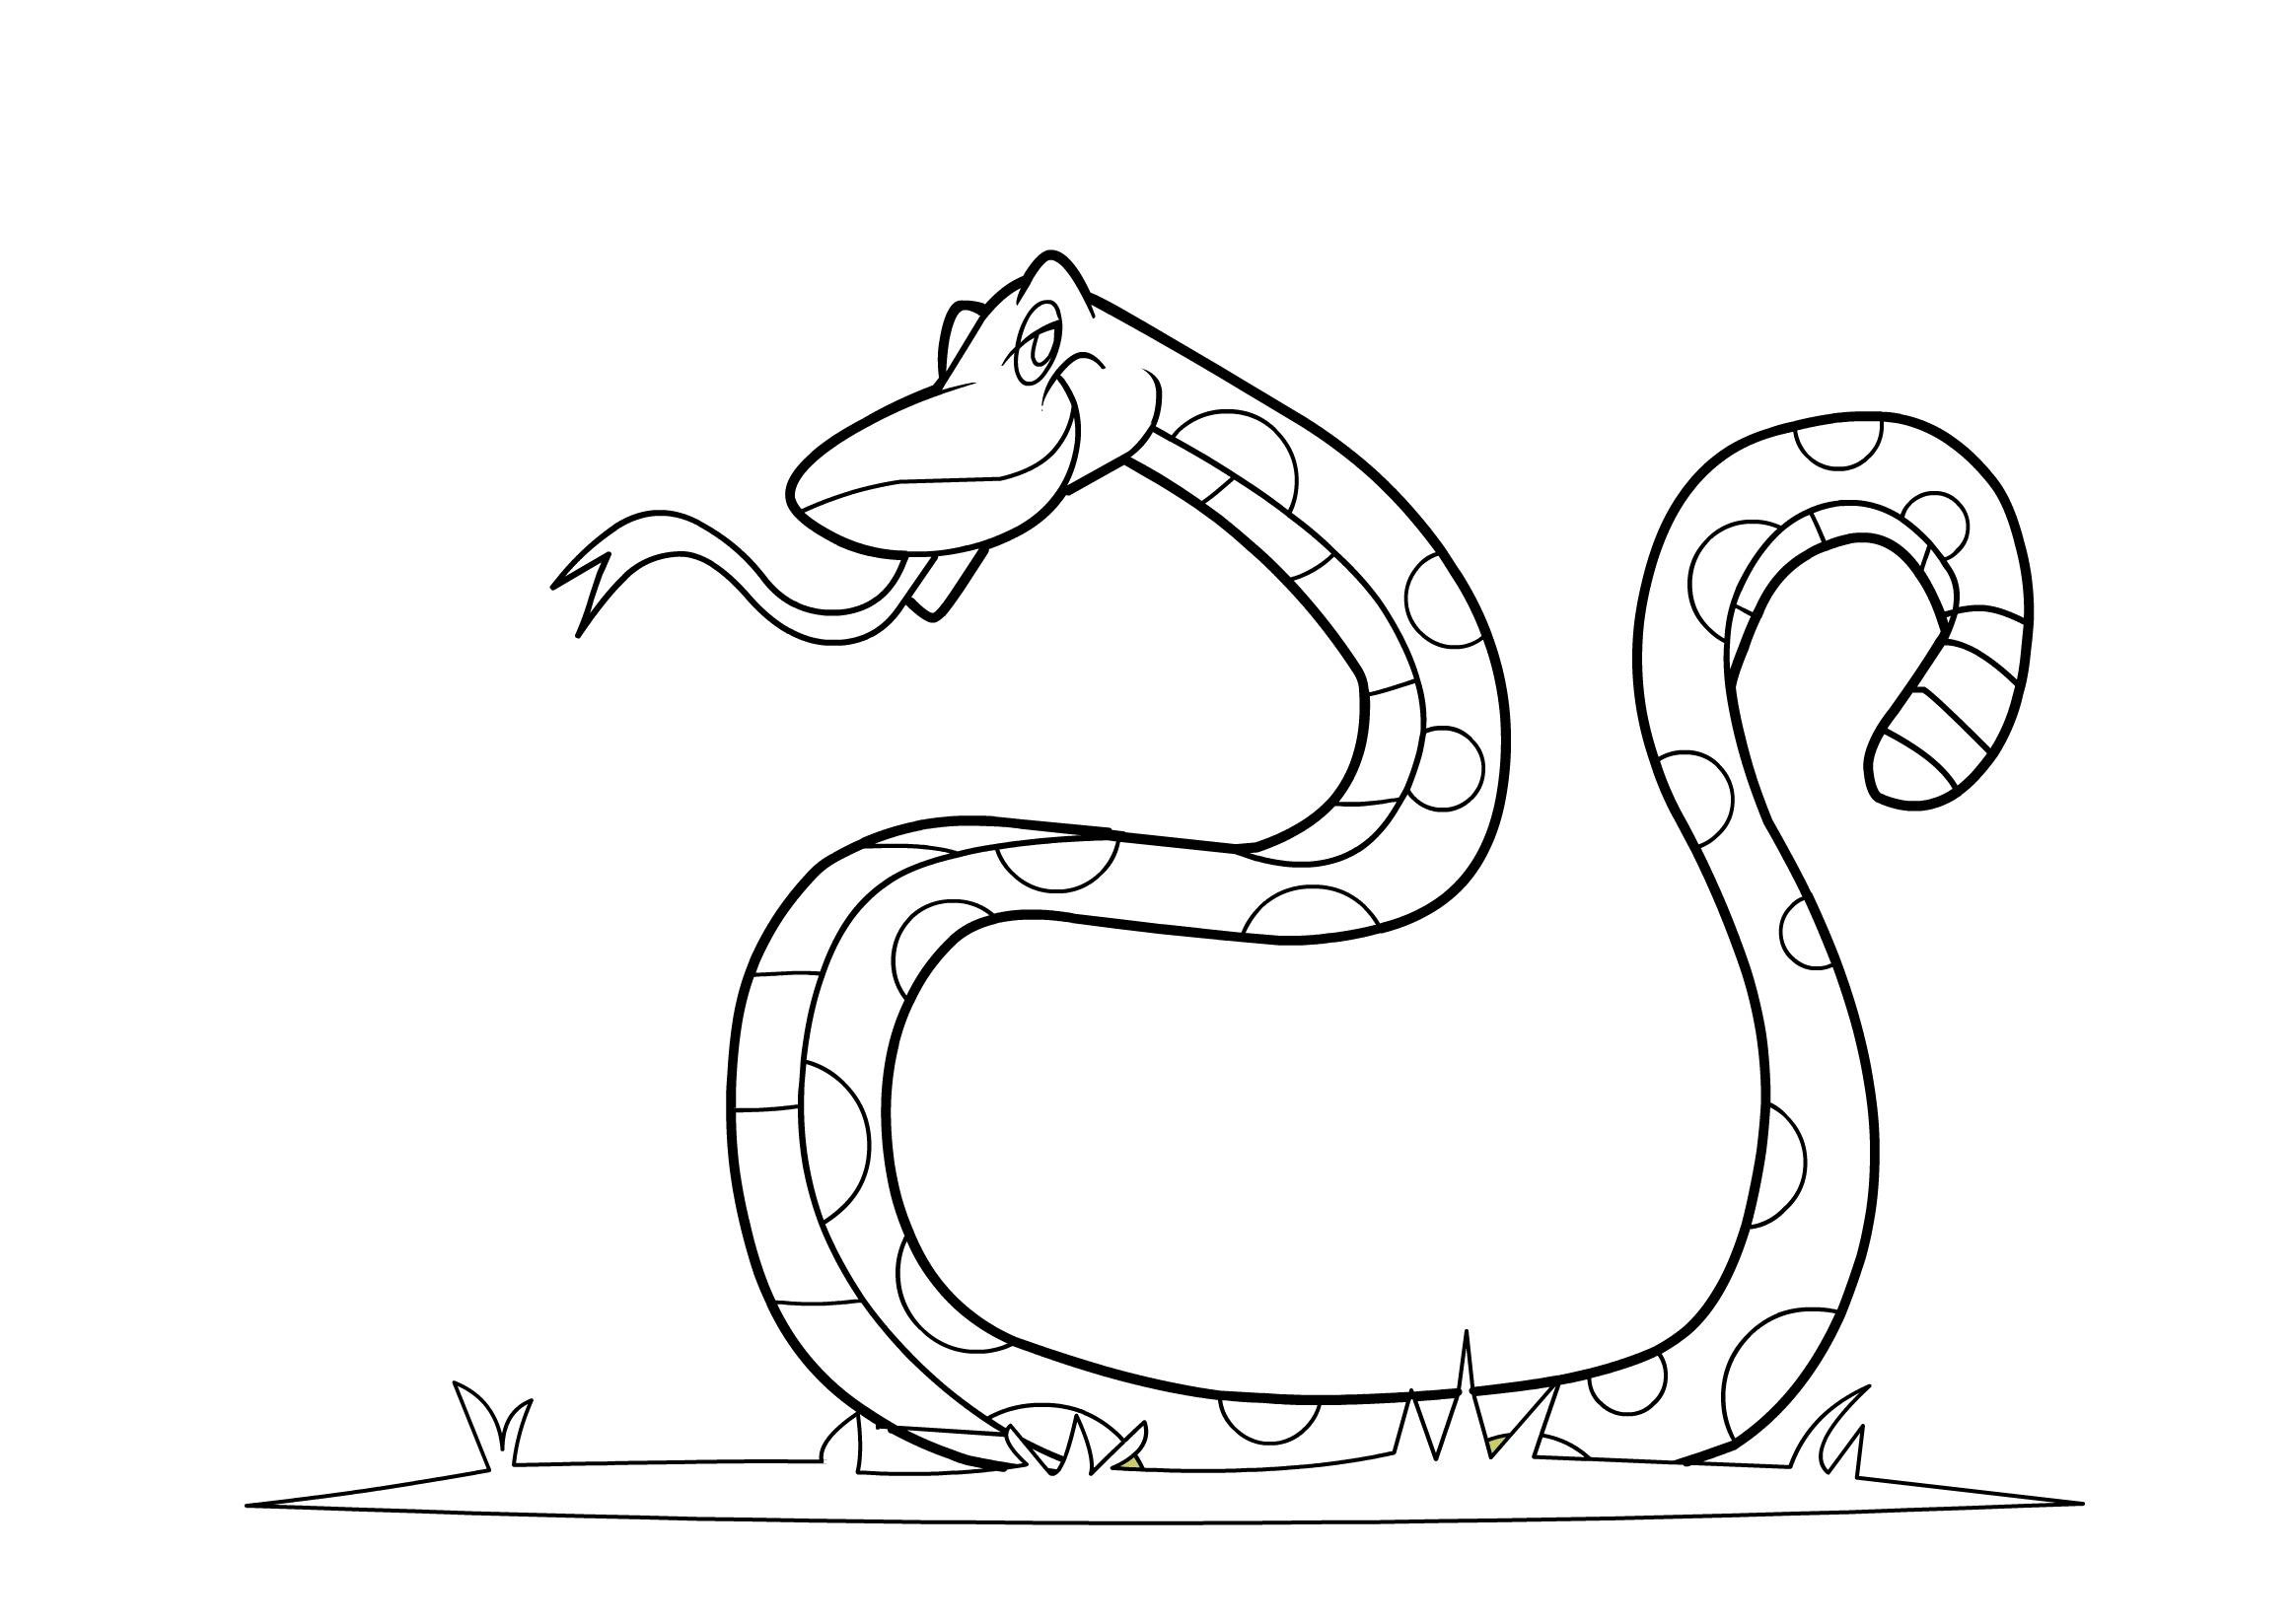 snake pictures for coloring free printable snake coloring pages for kids pictures for snake coloring